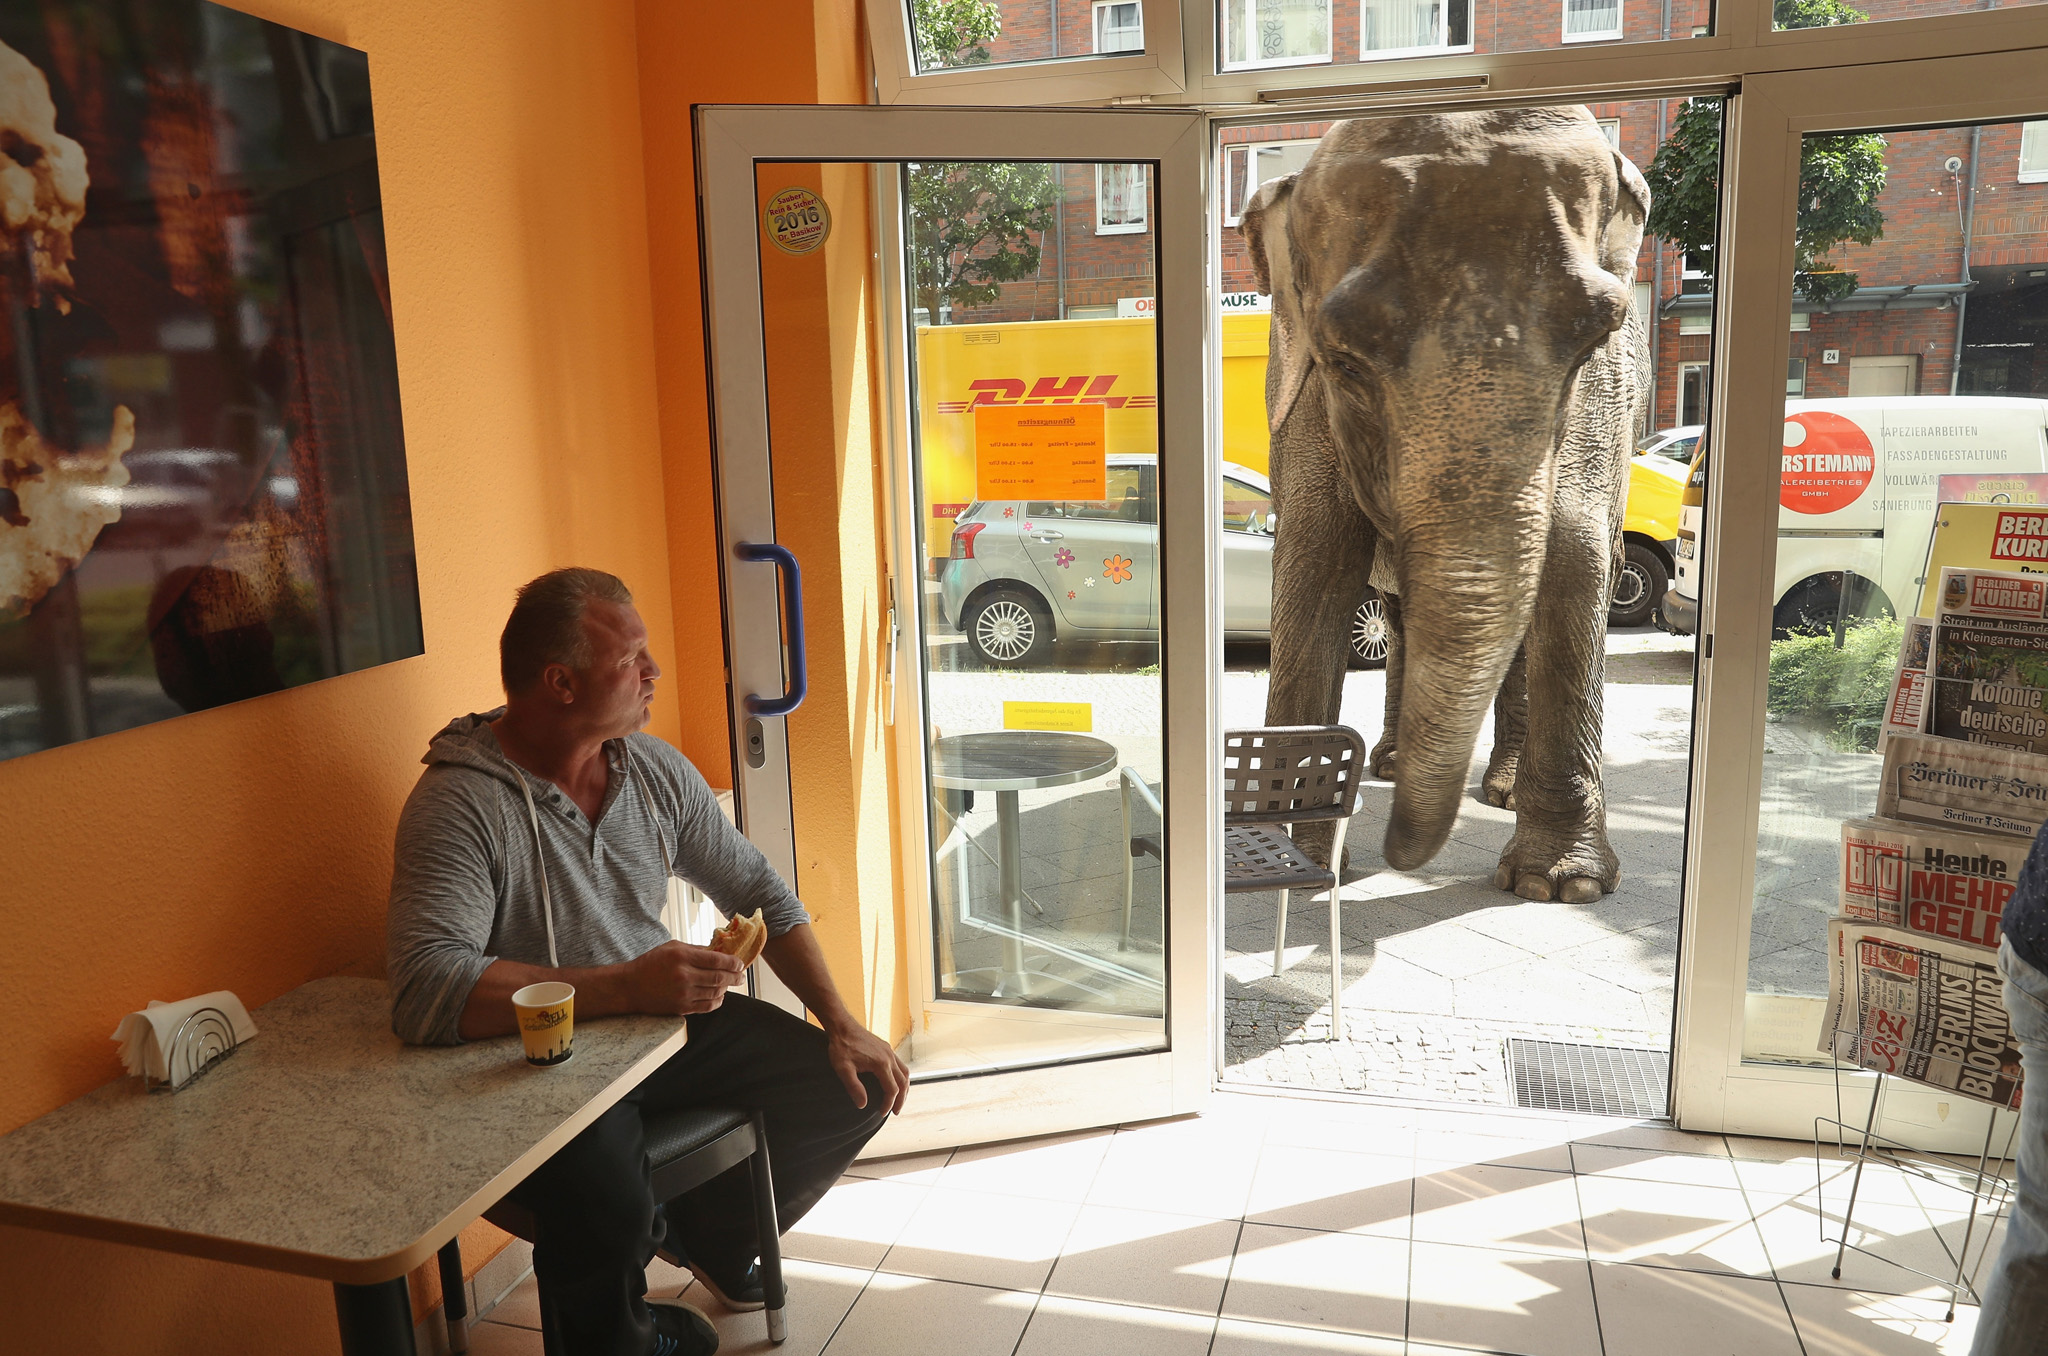 BERLIN, GERMANY - JULY 01:  Maja, a 40-year-old elephant, peeks into a bakery while one of her minders eats a sandwich during a stroll through the neighborhood with her minders from a nearby circus on July 1, 2016 in Berlin, Germany. Maja performs daily at Circus Busch and circus workers take her on walks among the nearby apartment buildings to vacant lots where she likes to eat the grass. City authorities sanction the outings and federal regulations reportedly encourage activities for elephants to stimulate the animals' cognitive awareness.  (Photo by Sean Gallup/Getty Images)